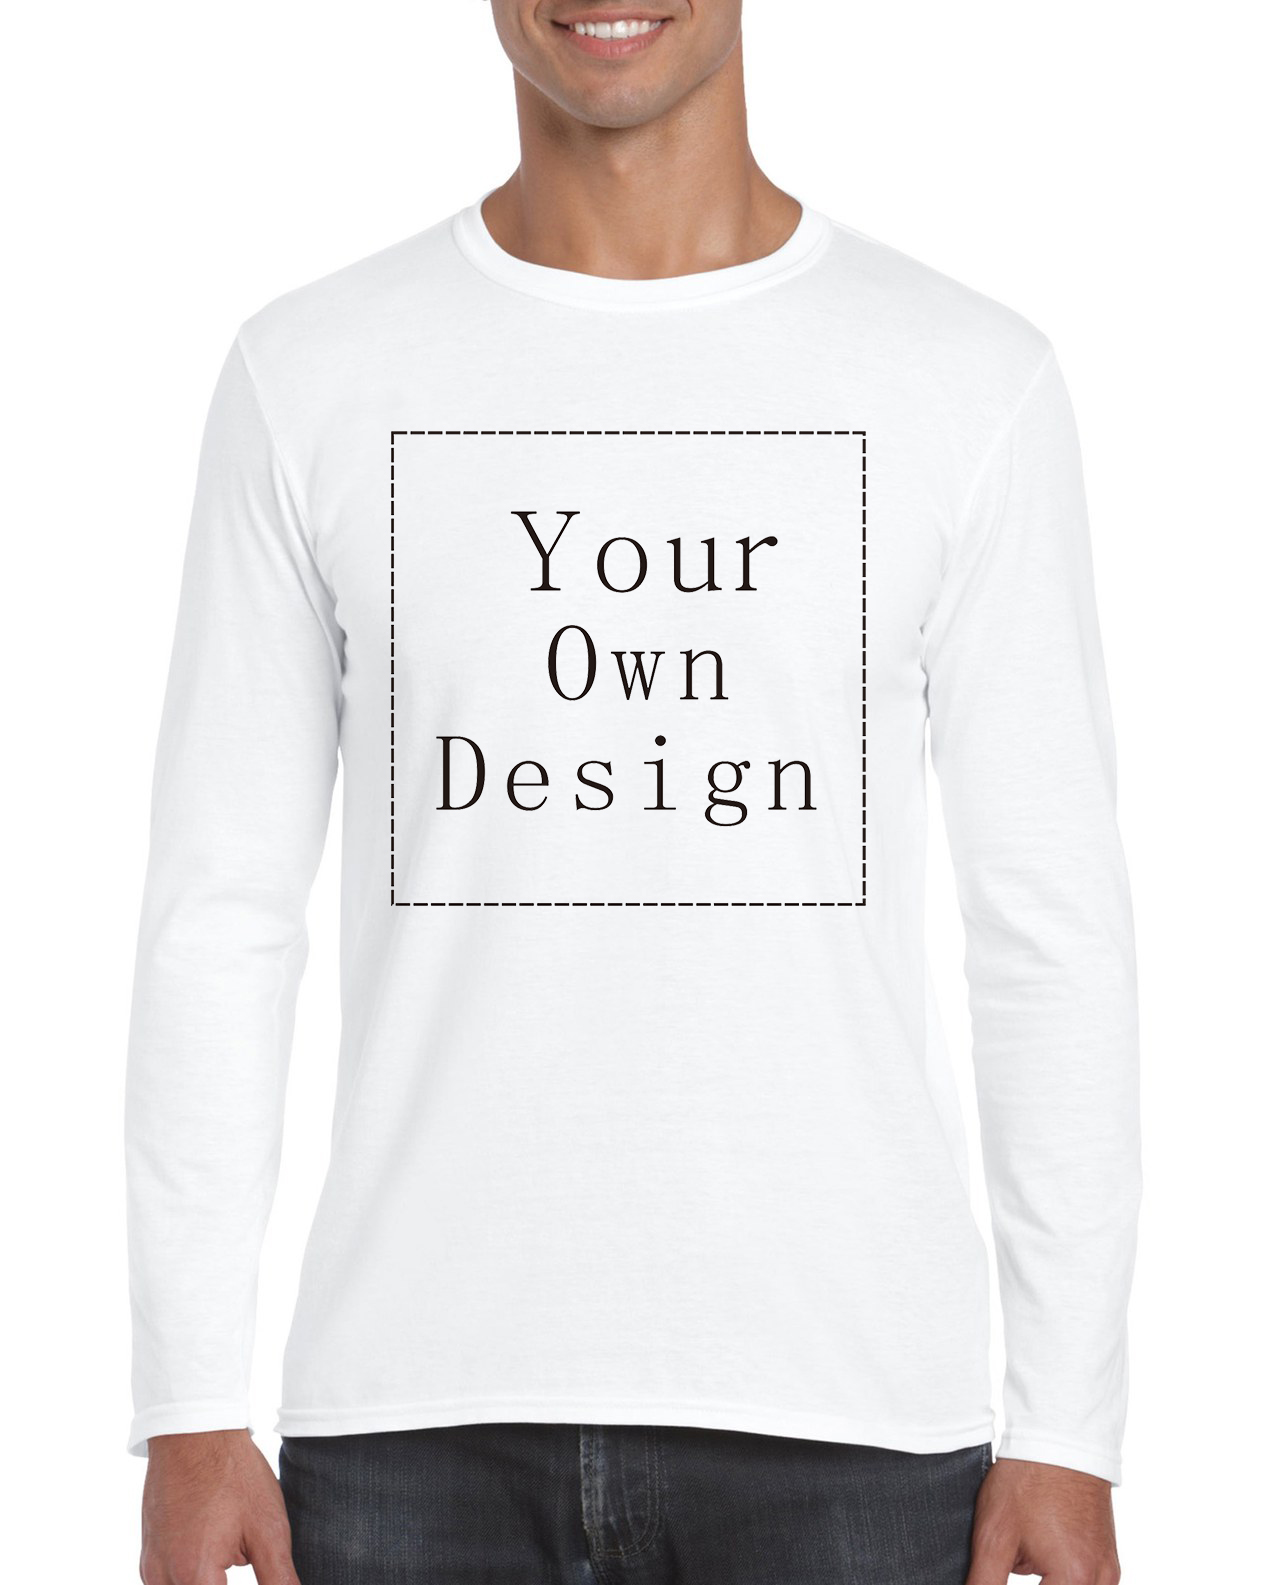 Design your own t-shirt long sleeve - Customized Men S Long T Shirt Print Your Own Design High Quality Fast Ship China